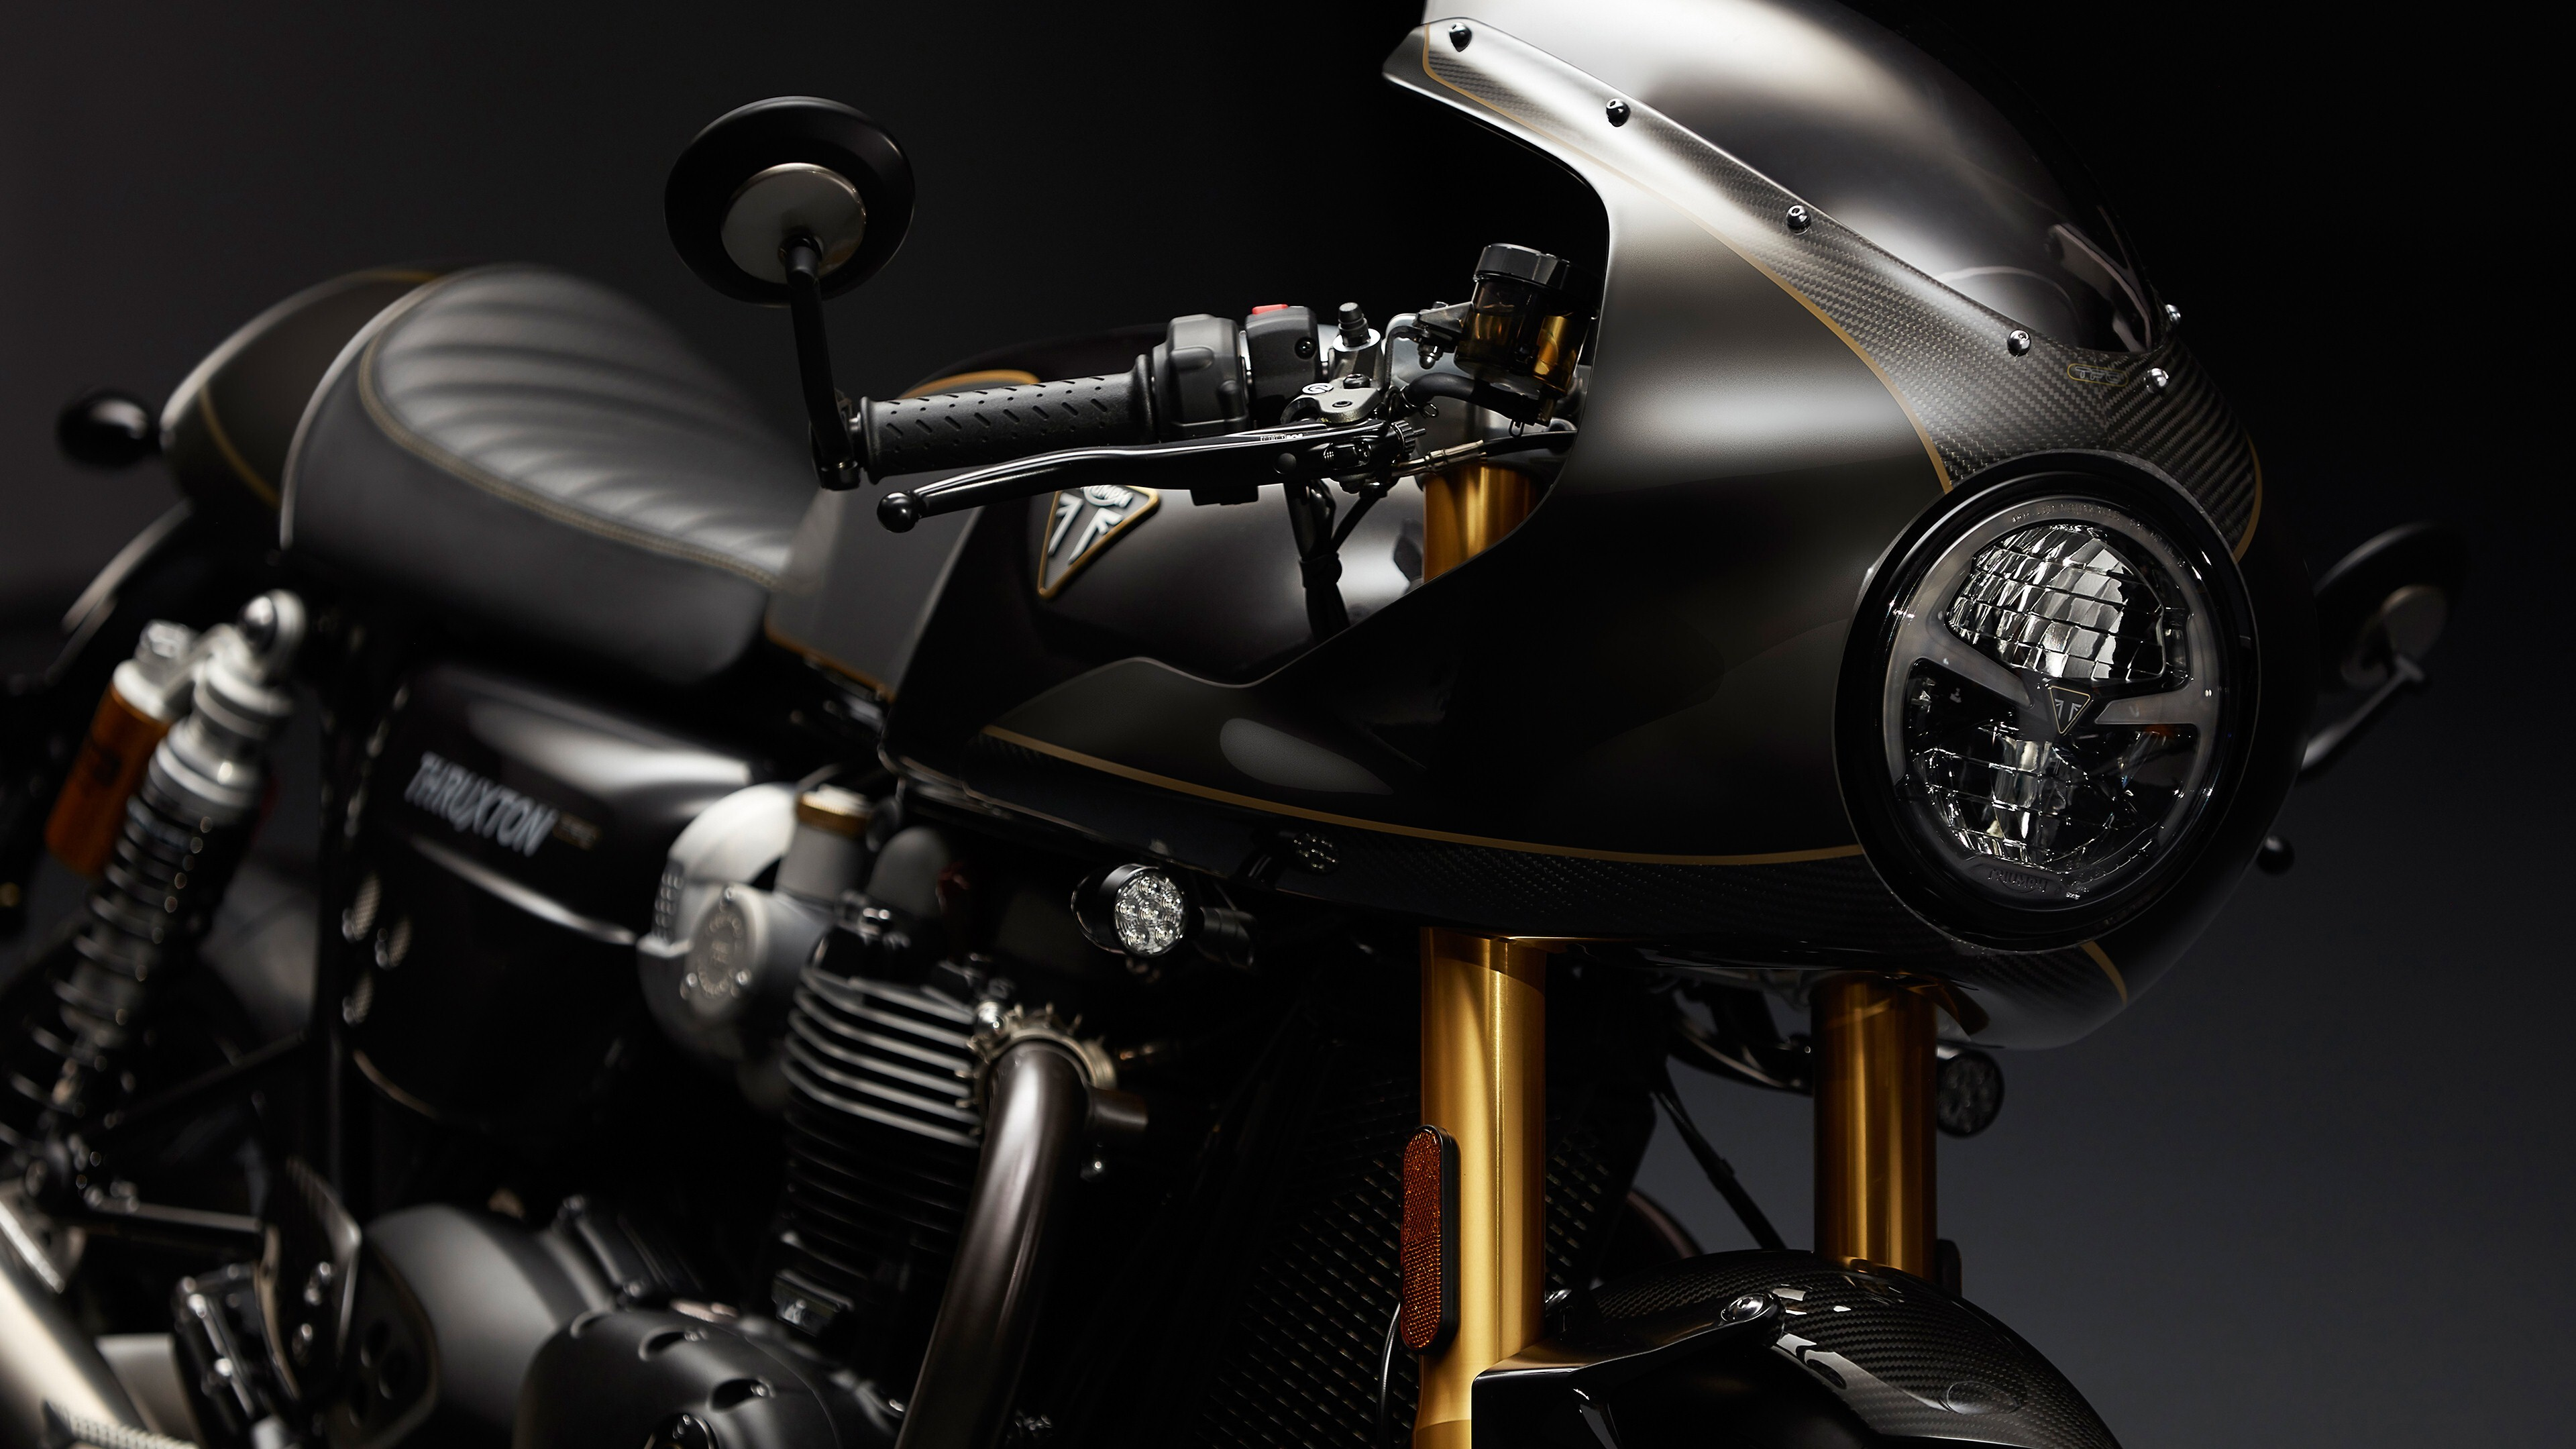 4K Wallpaper Of 2019 Triumph Thruxton TFC Motorcycle